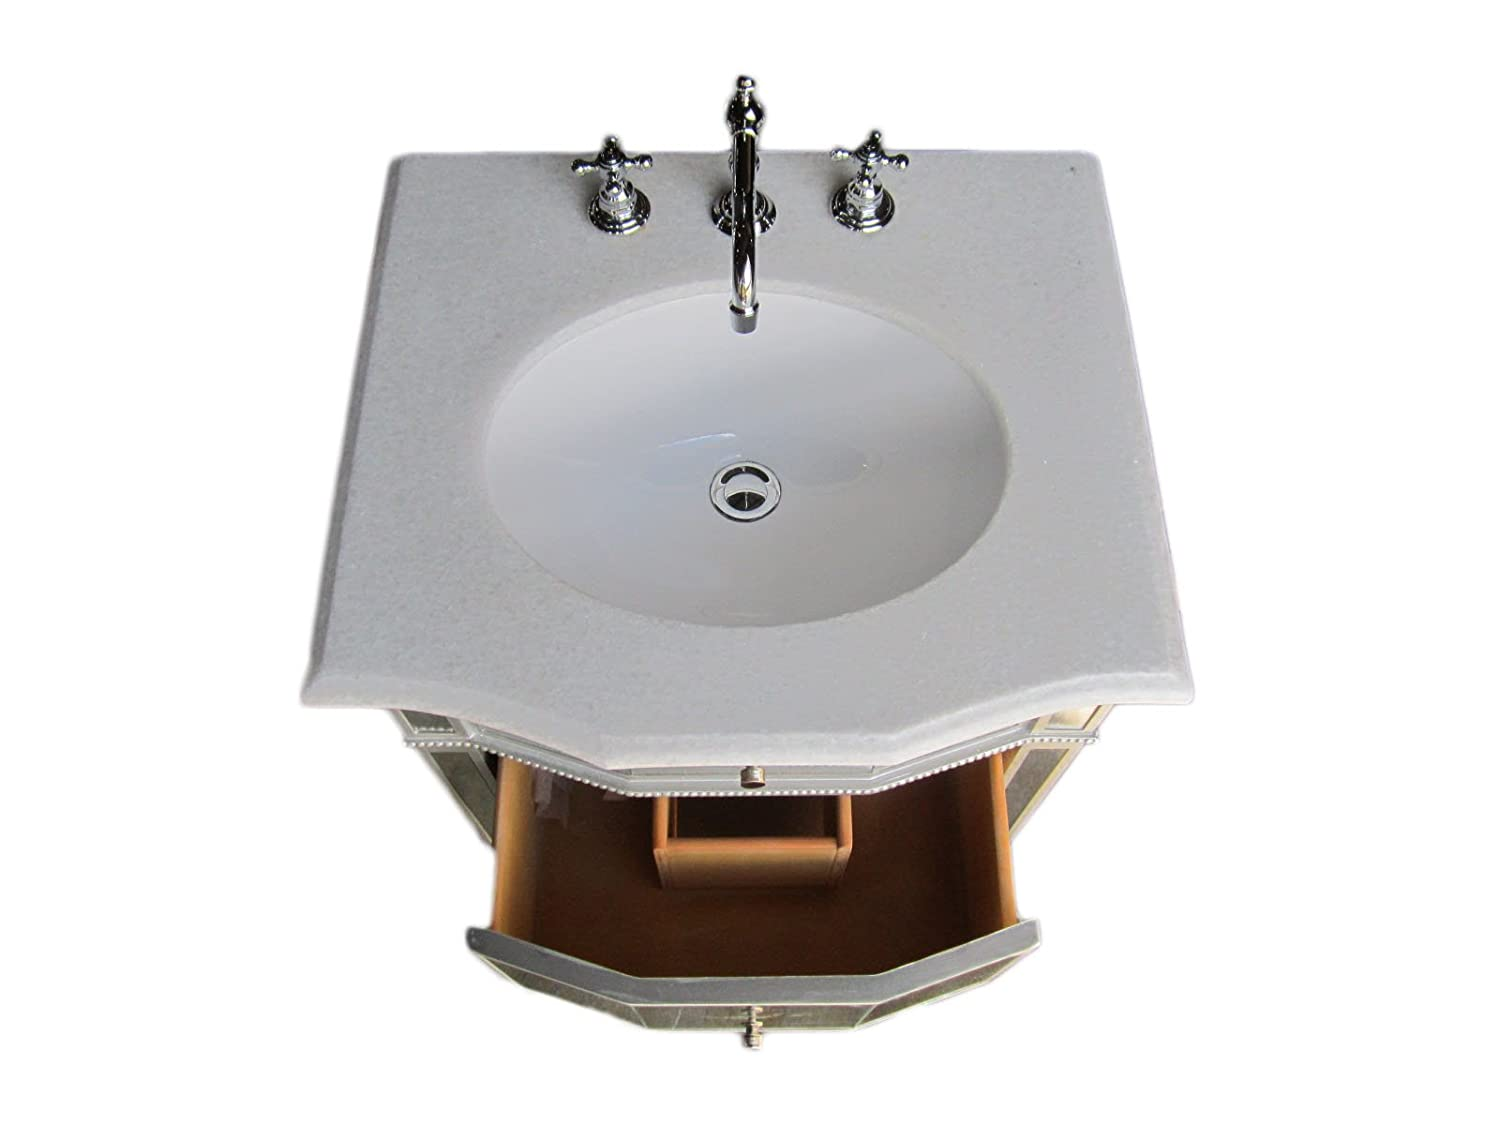 24 All Mirror Petite Bathroom Sink Vanity – Ashlie Model HF006